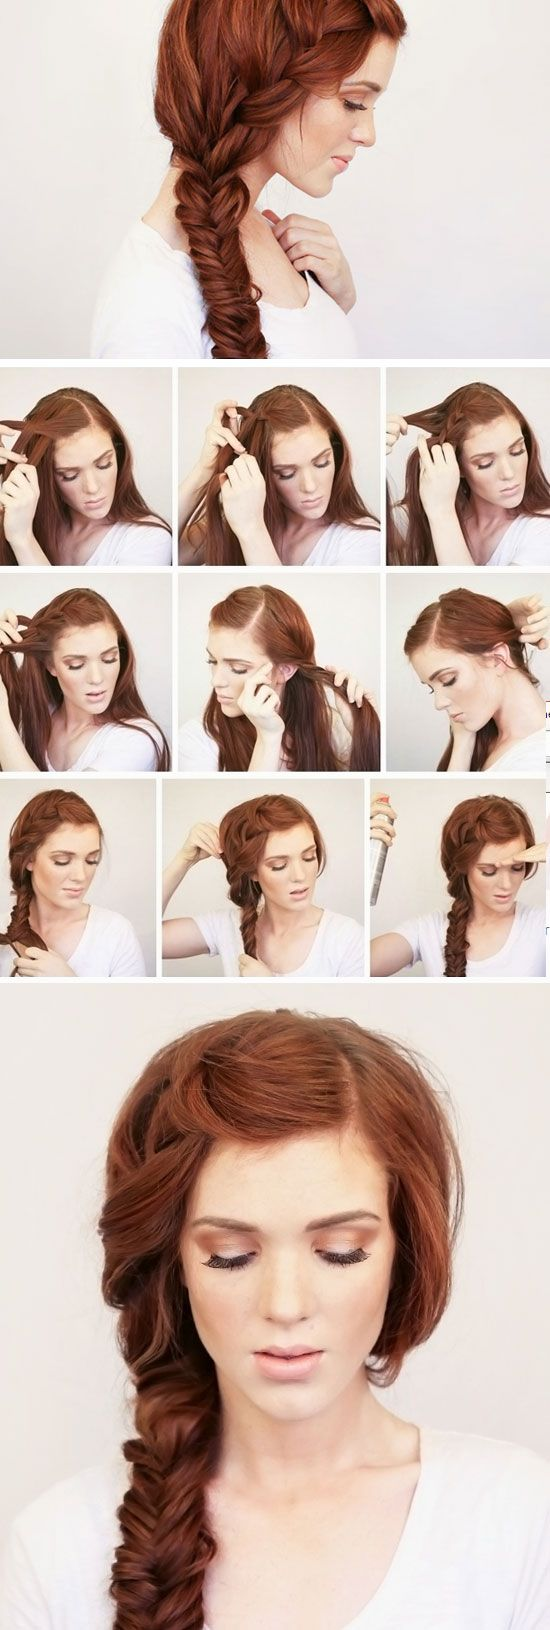 863 Best Images About Keep Yo Hair Out Yo Face! P On Pinterest